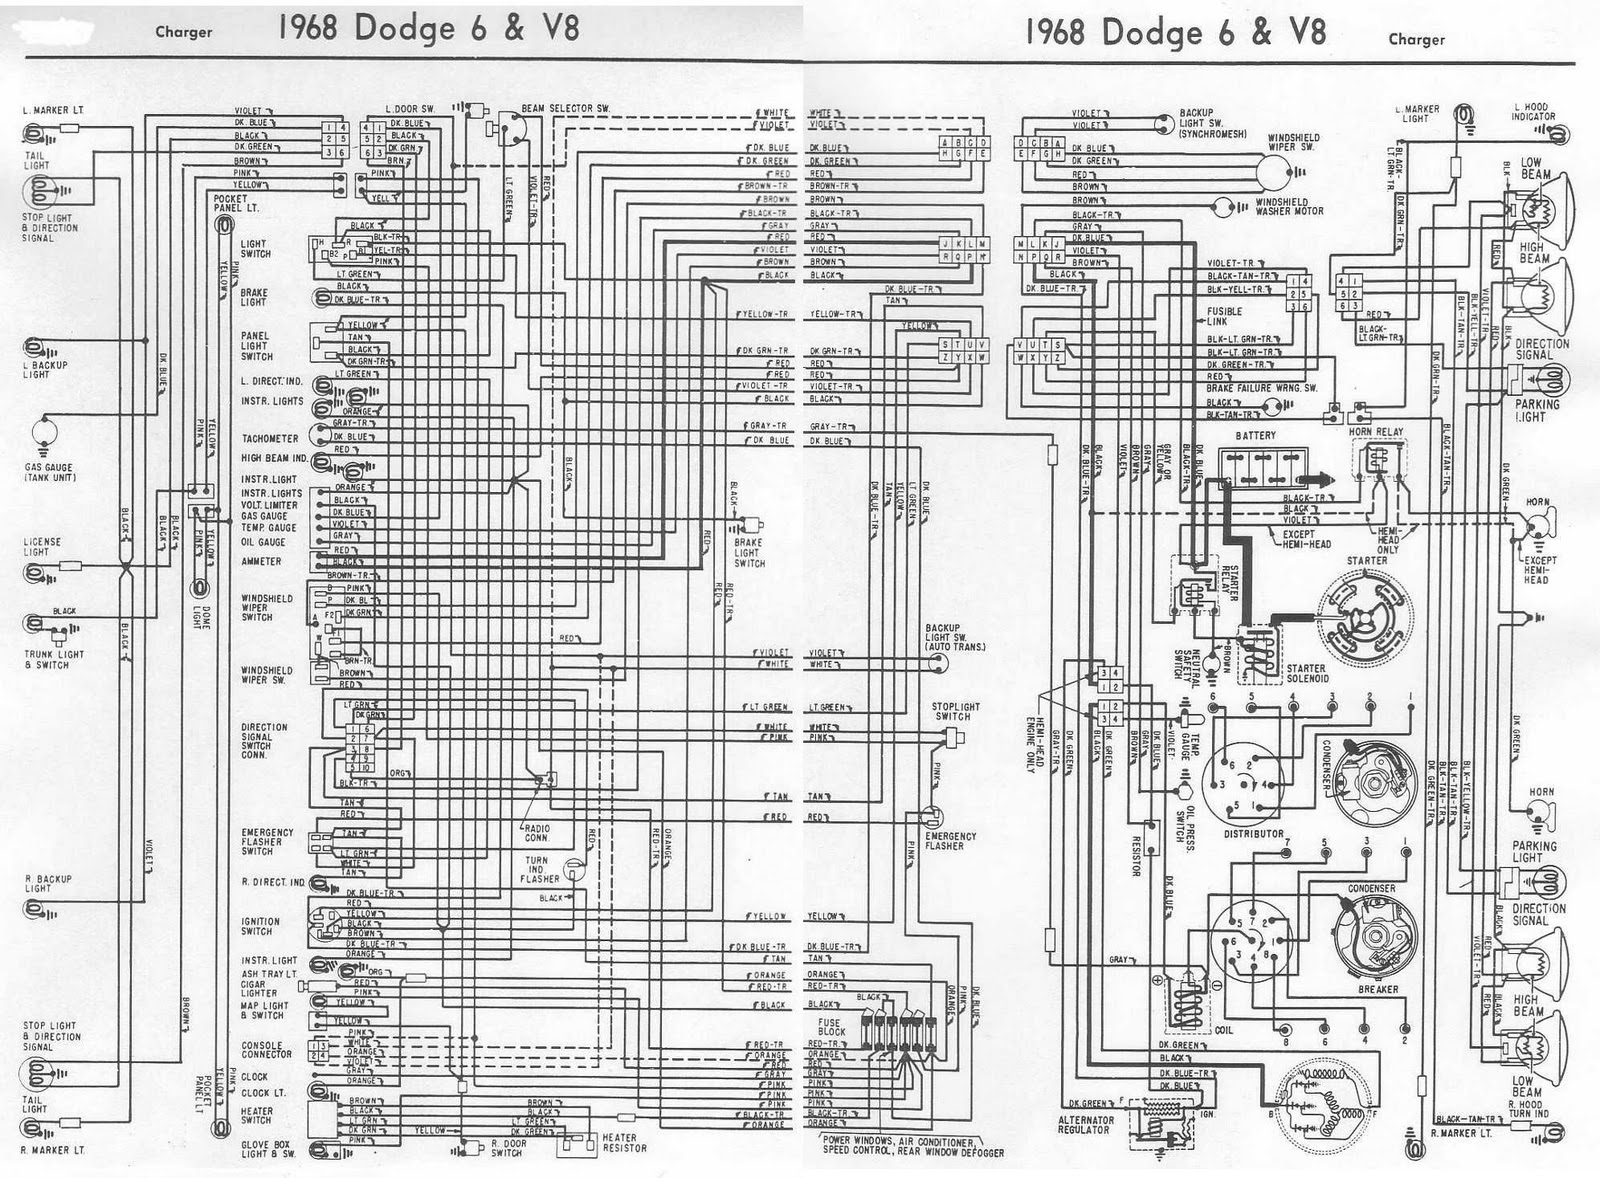 1968 Dodge Wiring Diagram Data 318 Engine Coronet Guide And Troubleshooting Of Ignition